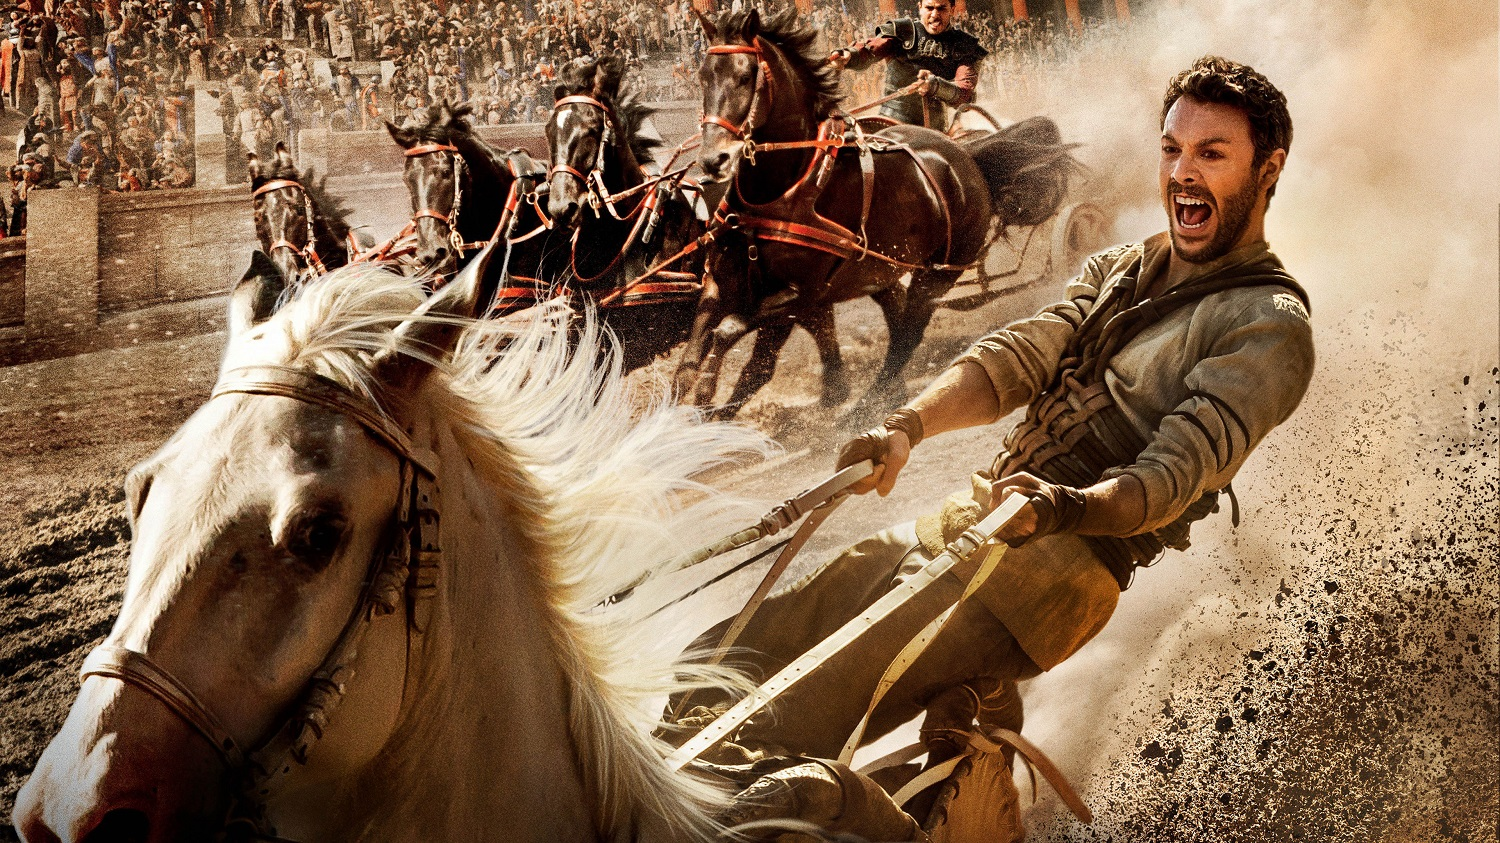 Ben-Hur, movie review, by Lucas Mirabella